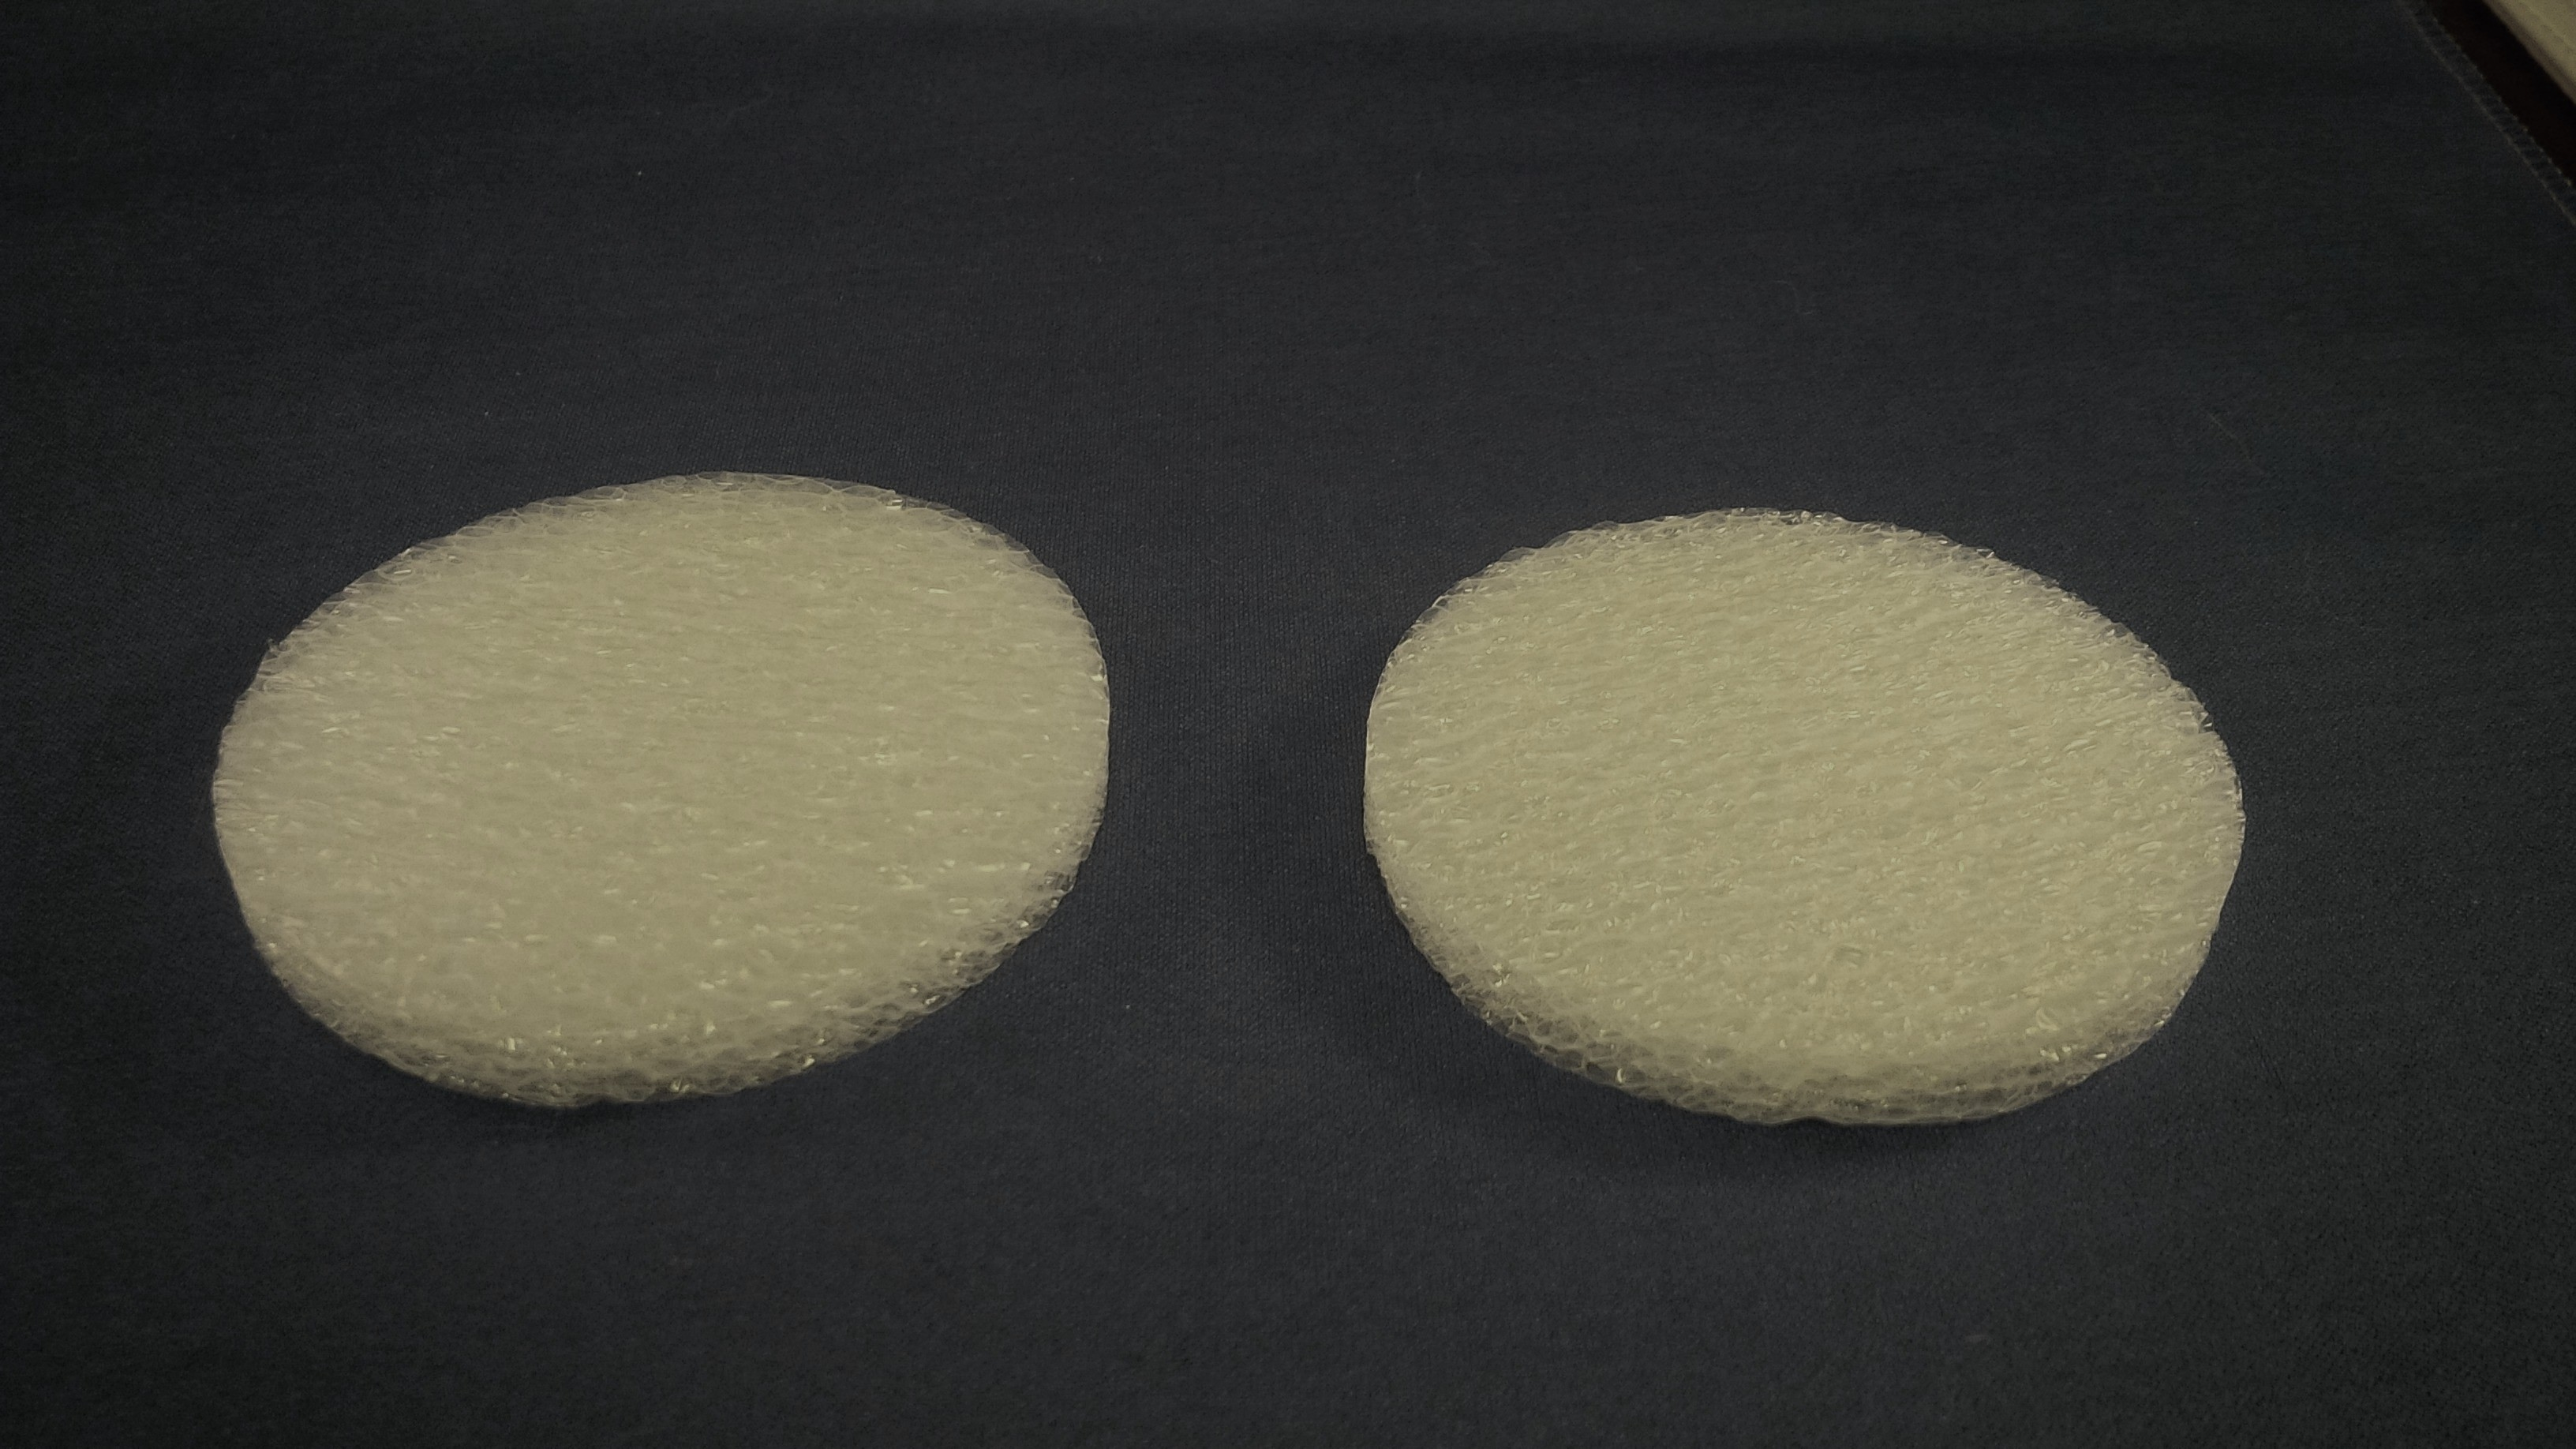 Pair of 85mm inserts for Quark container (QCONTAINER)